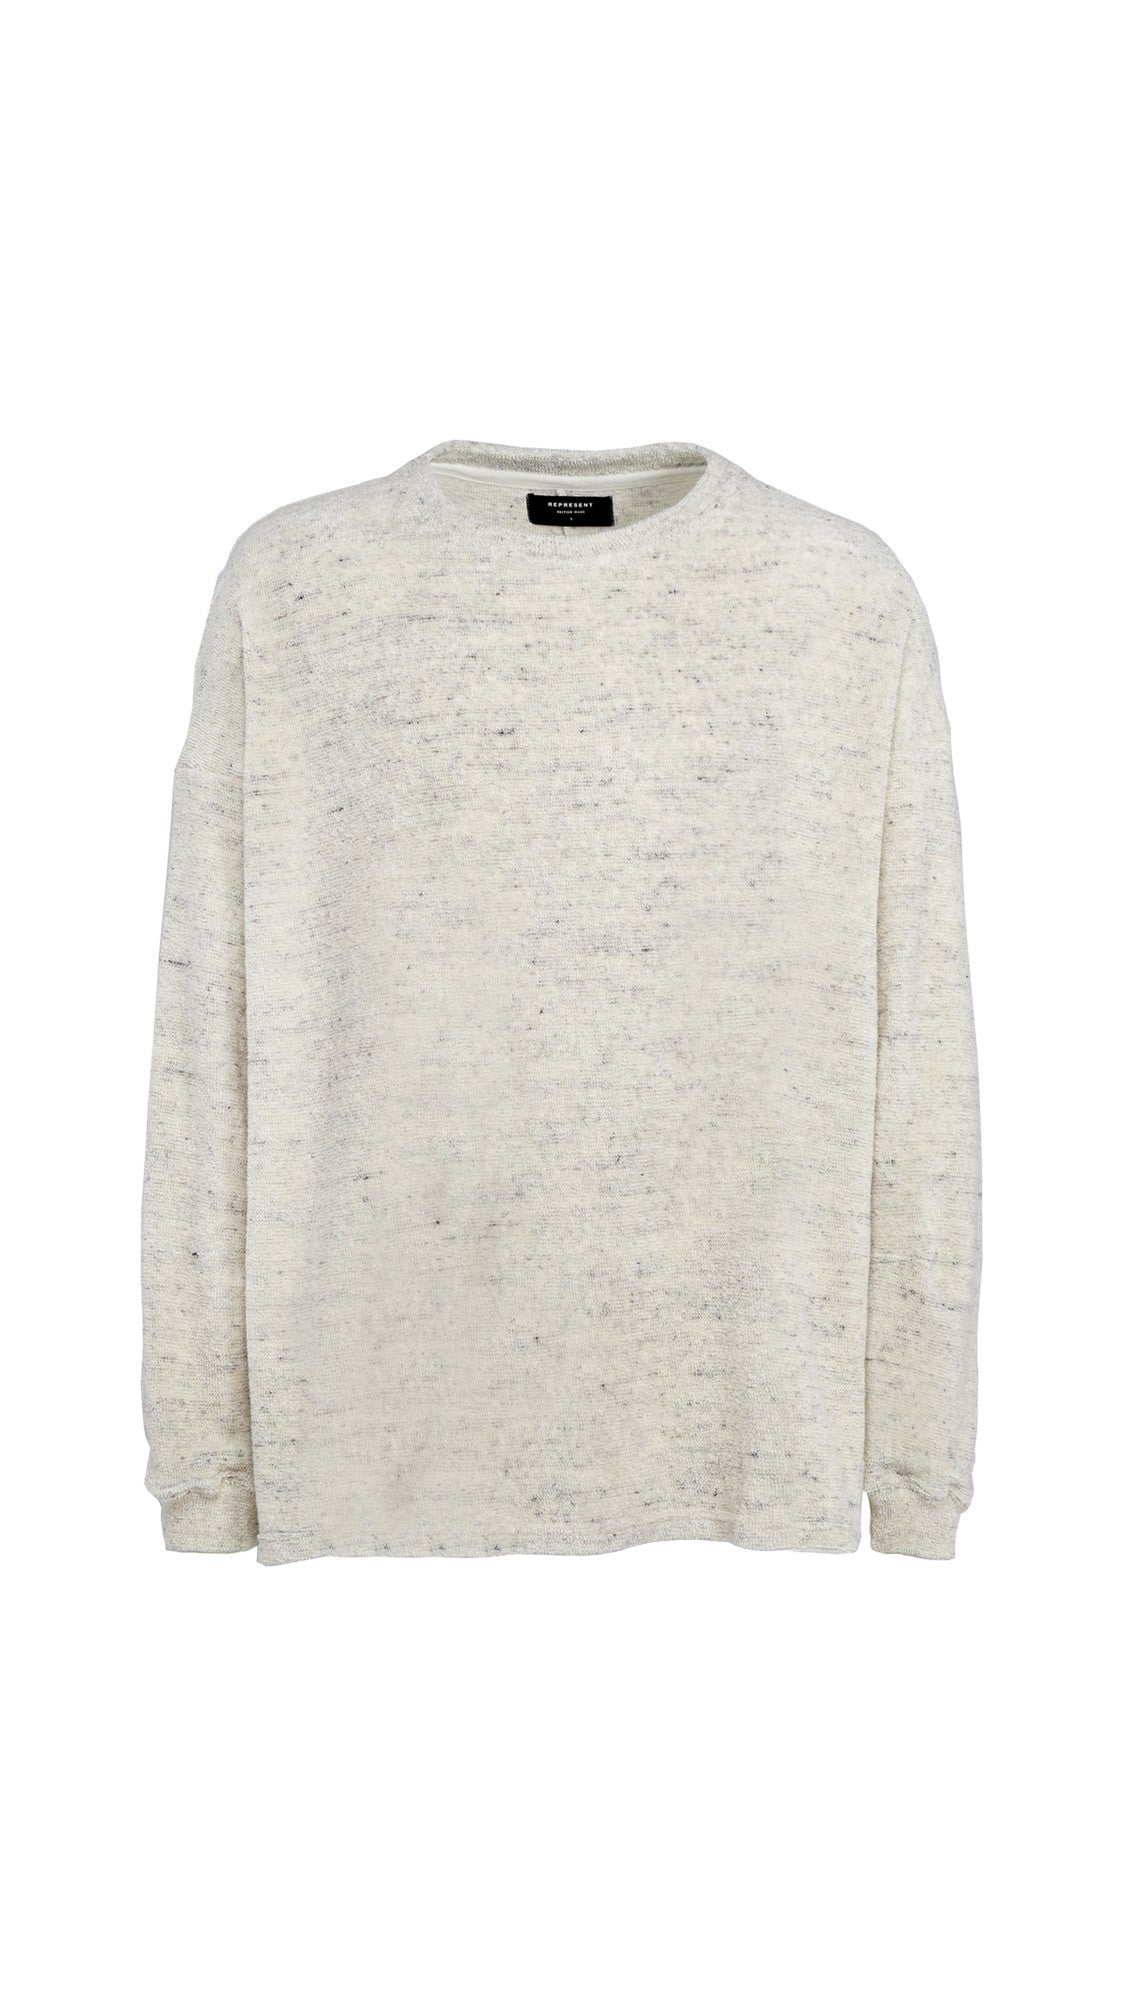 Towel Sweater - Cream